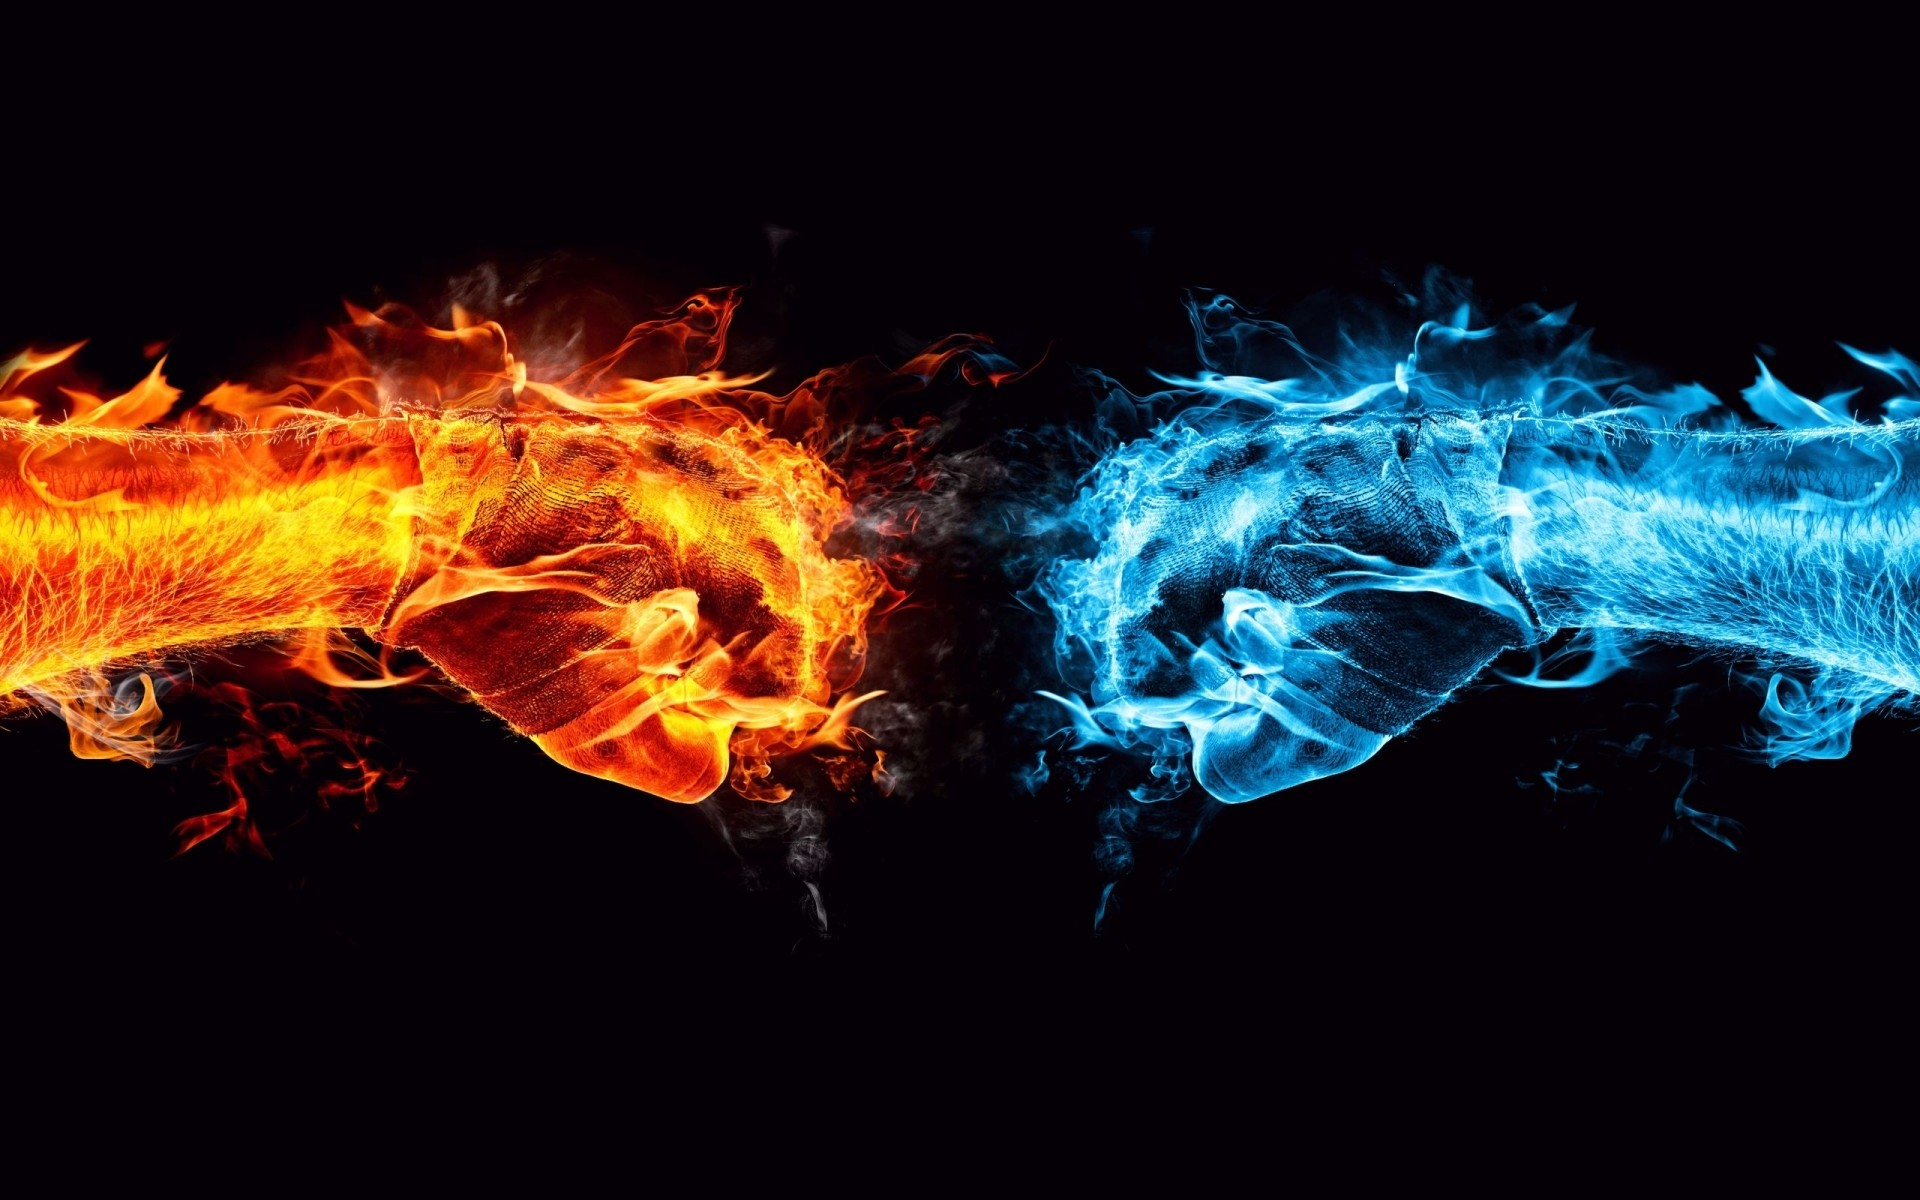 Best Wallpaper Fire and Water Unite